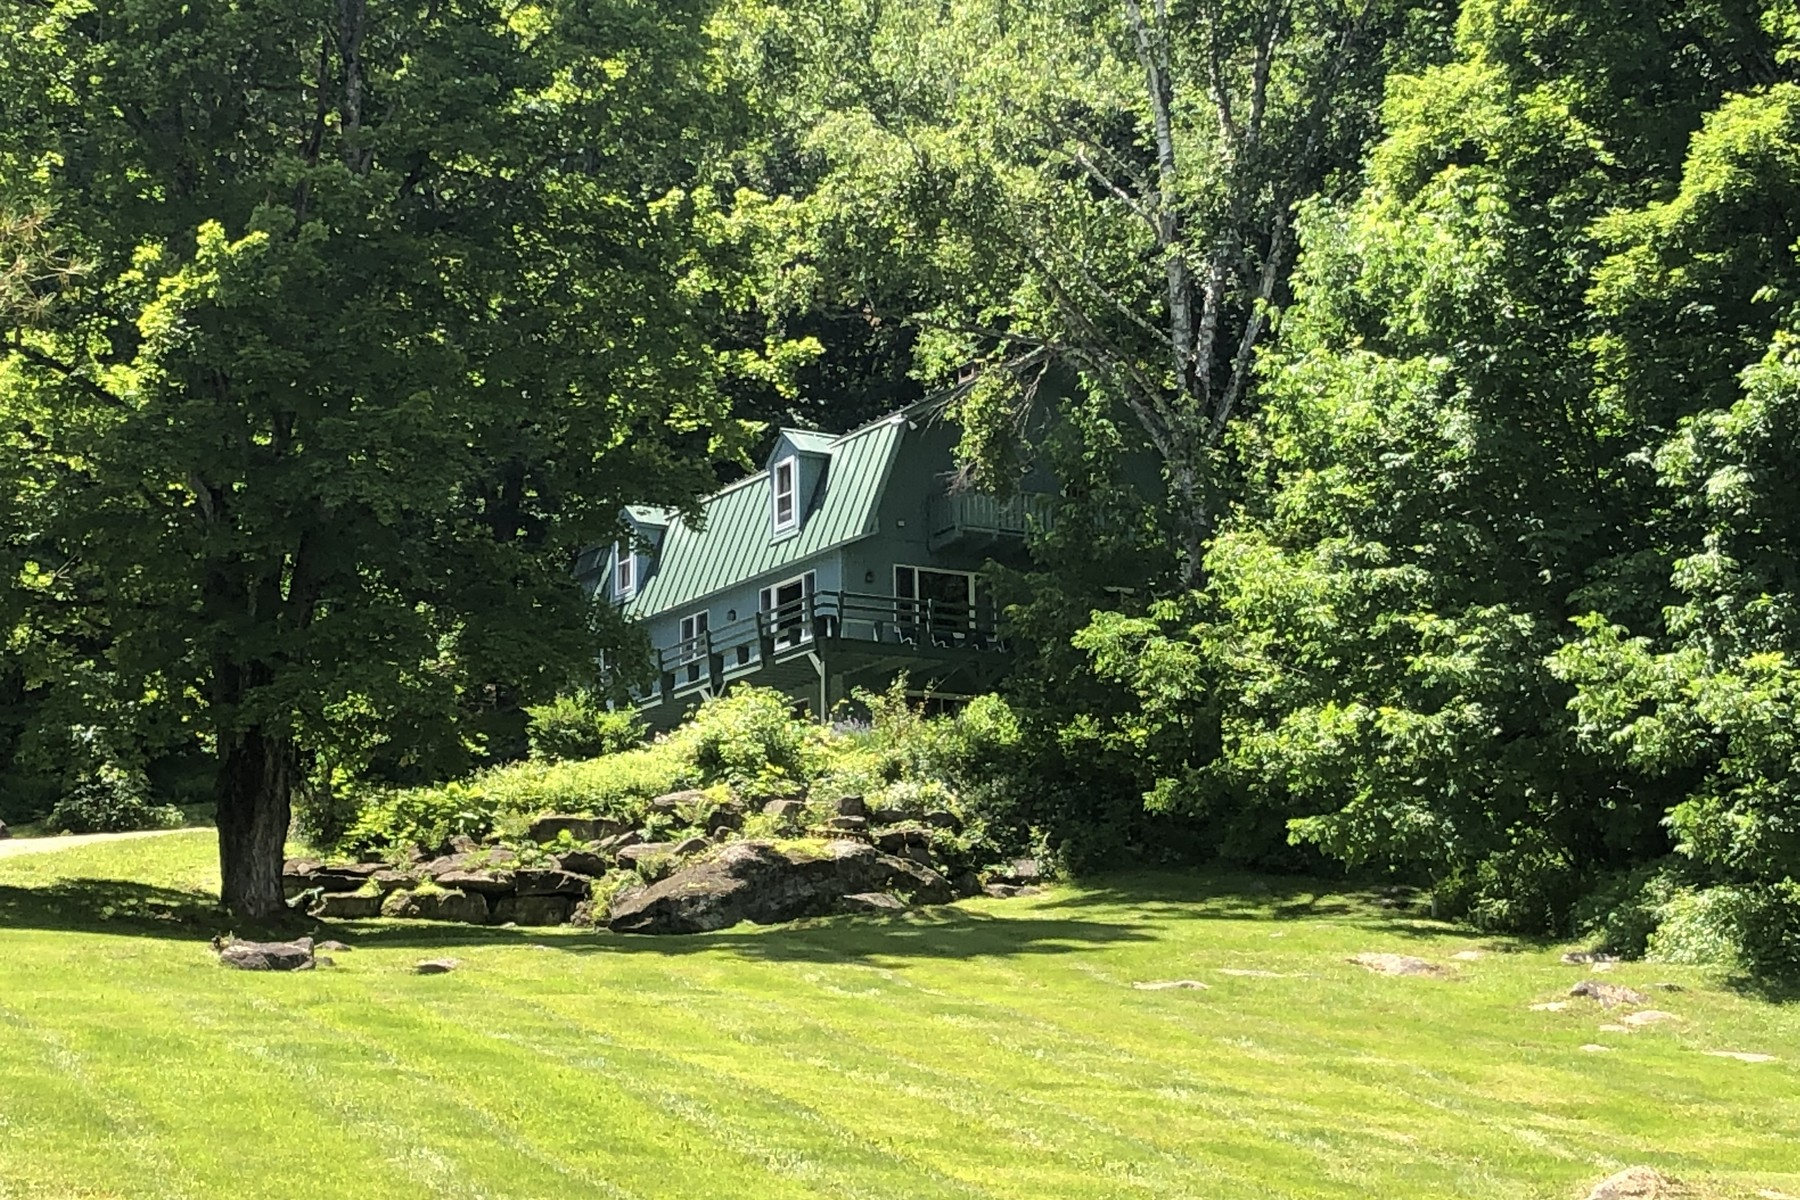 Single Family Homes for Sale at 26 Serene Acres with Long Views 10 Hapgood Pond Rd Landgrove, Vermont 05148 United States